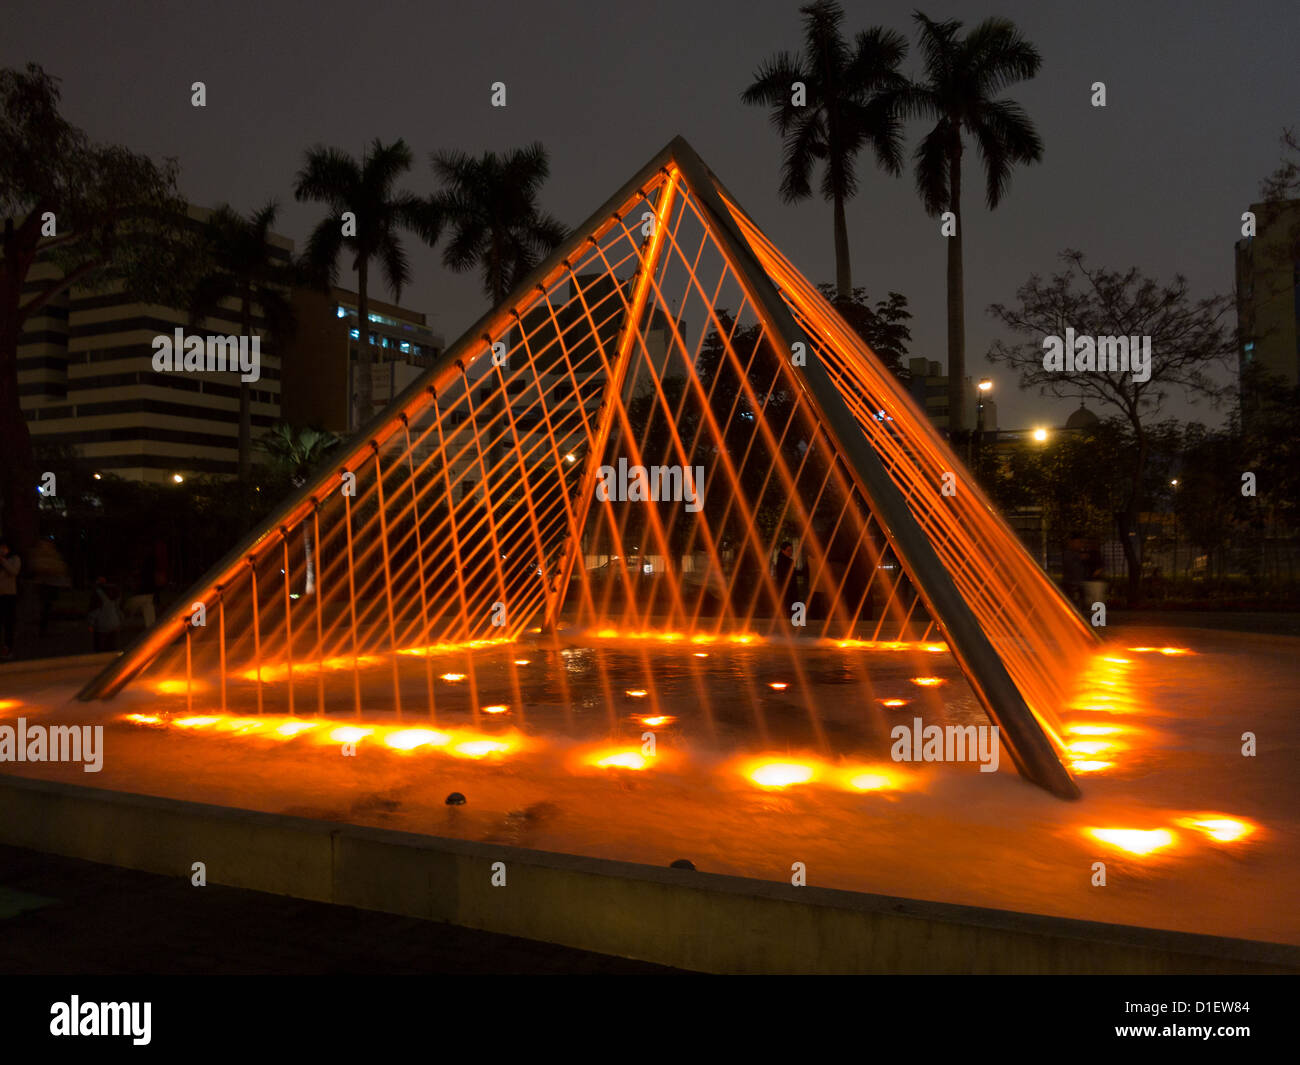 Water fountains lima - Illuminated Fountains At Dusk In Magic Water Circuit Tour El Circuito M Gico Del Agua In Reserve Park Lima Peru